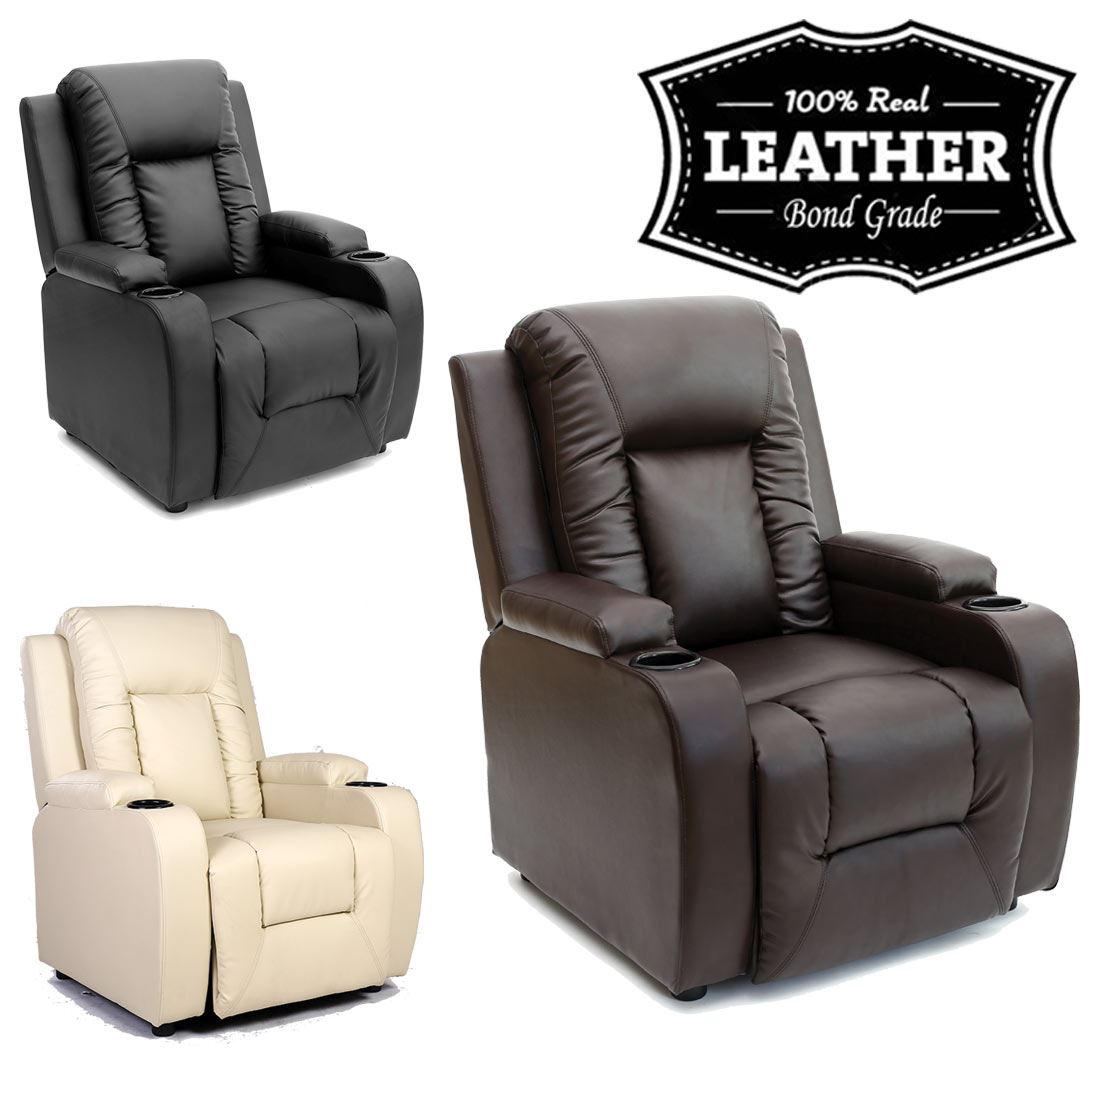 recliner lounge sofa chair amazon real leather uk co dp brown reclining gaming home armchair madison kitchen